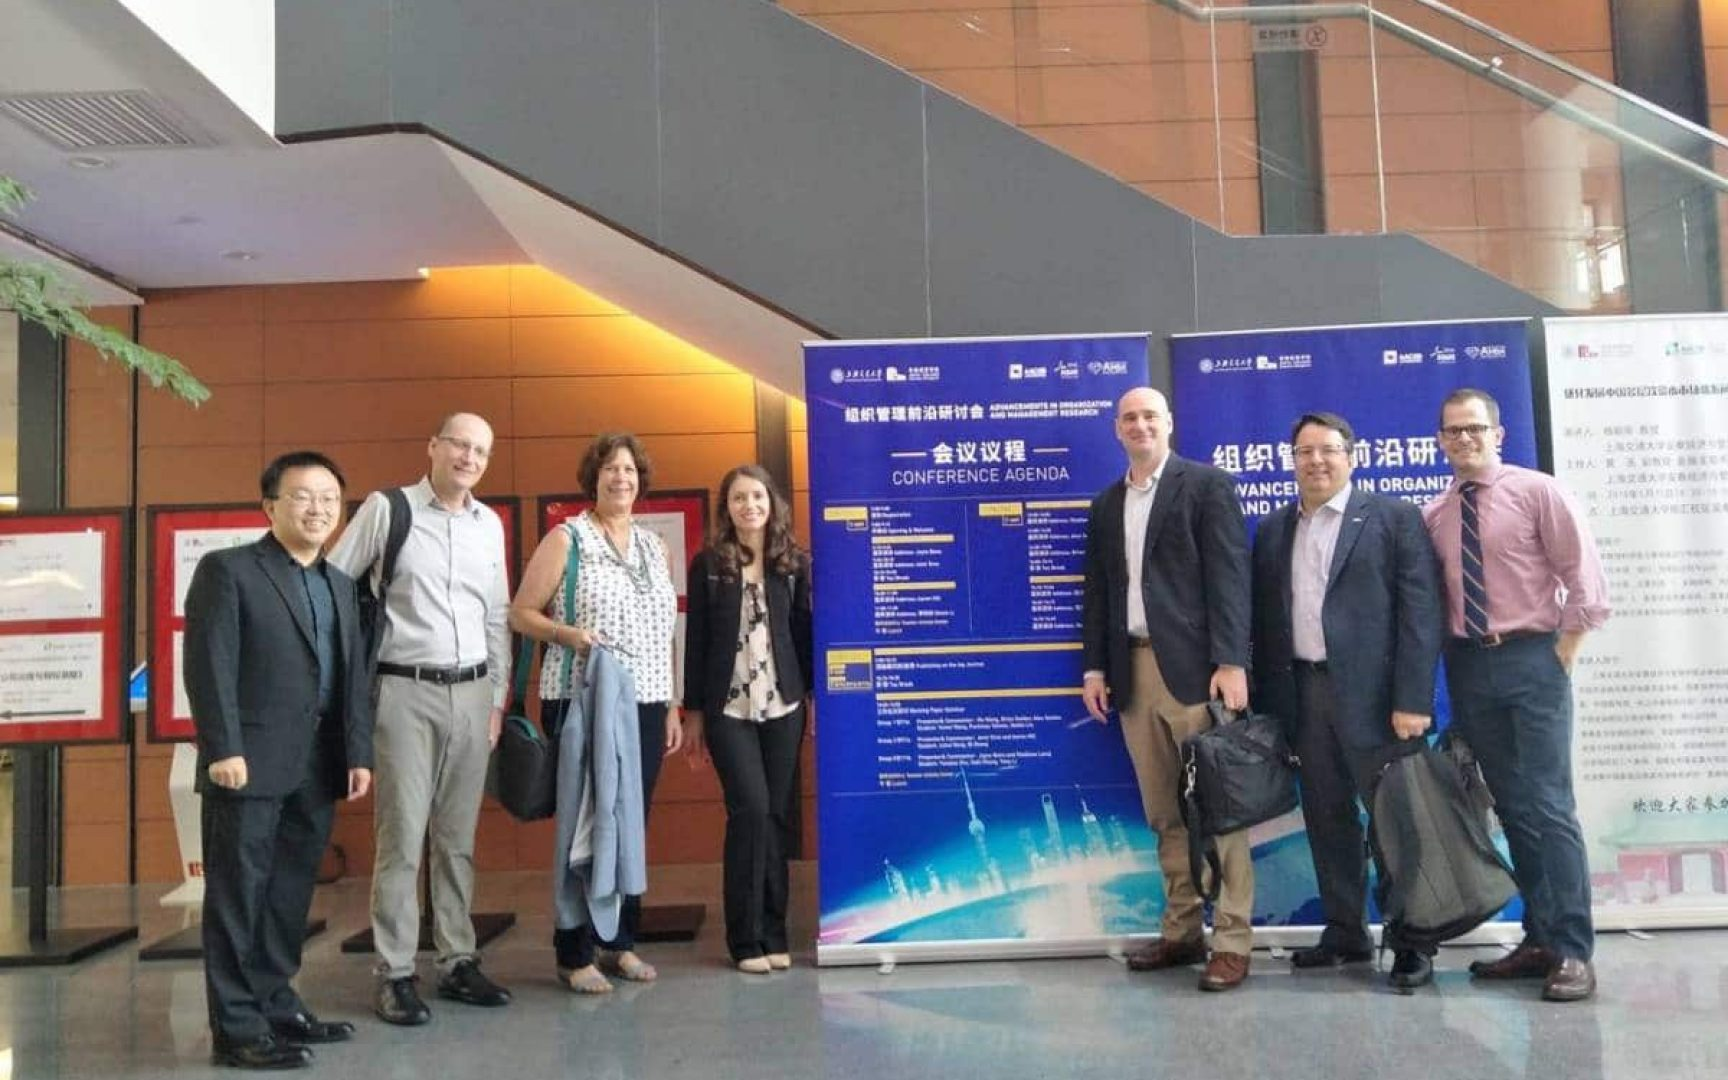 Seven faculty members from Warrington's management department pose in front of the conference sign in China